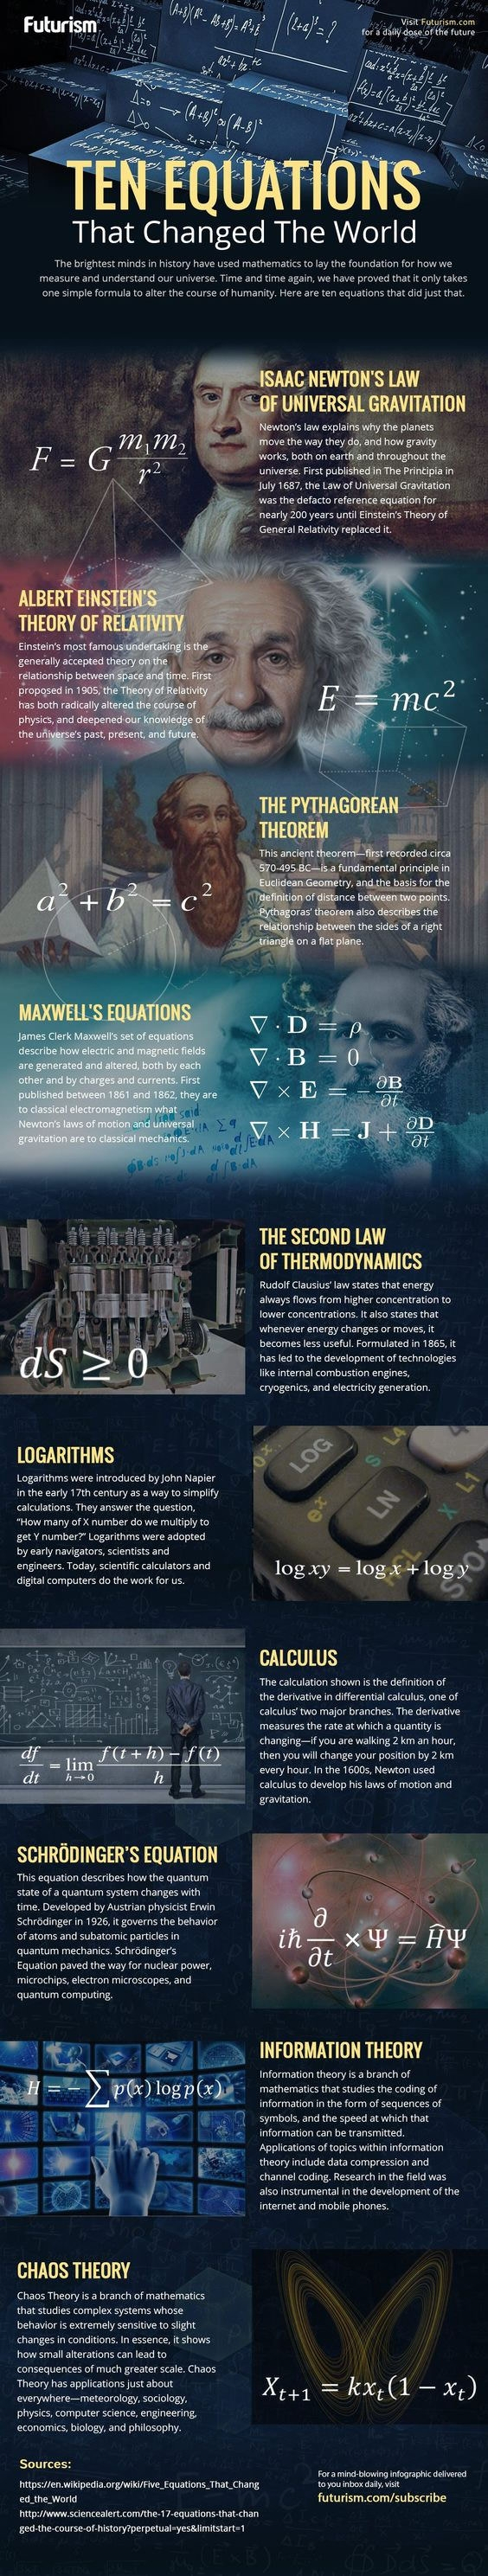 The equations that changed the world